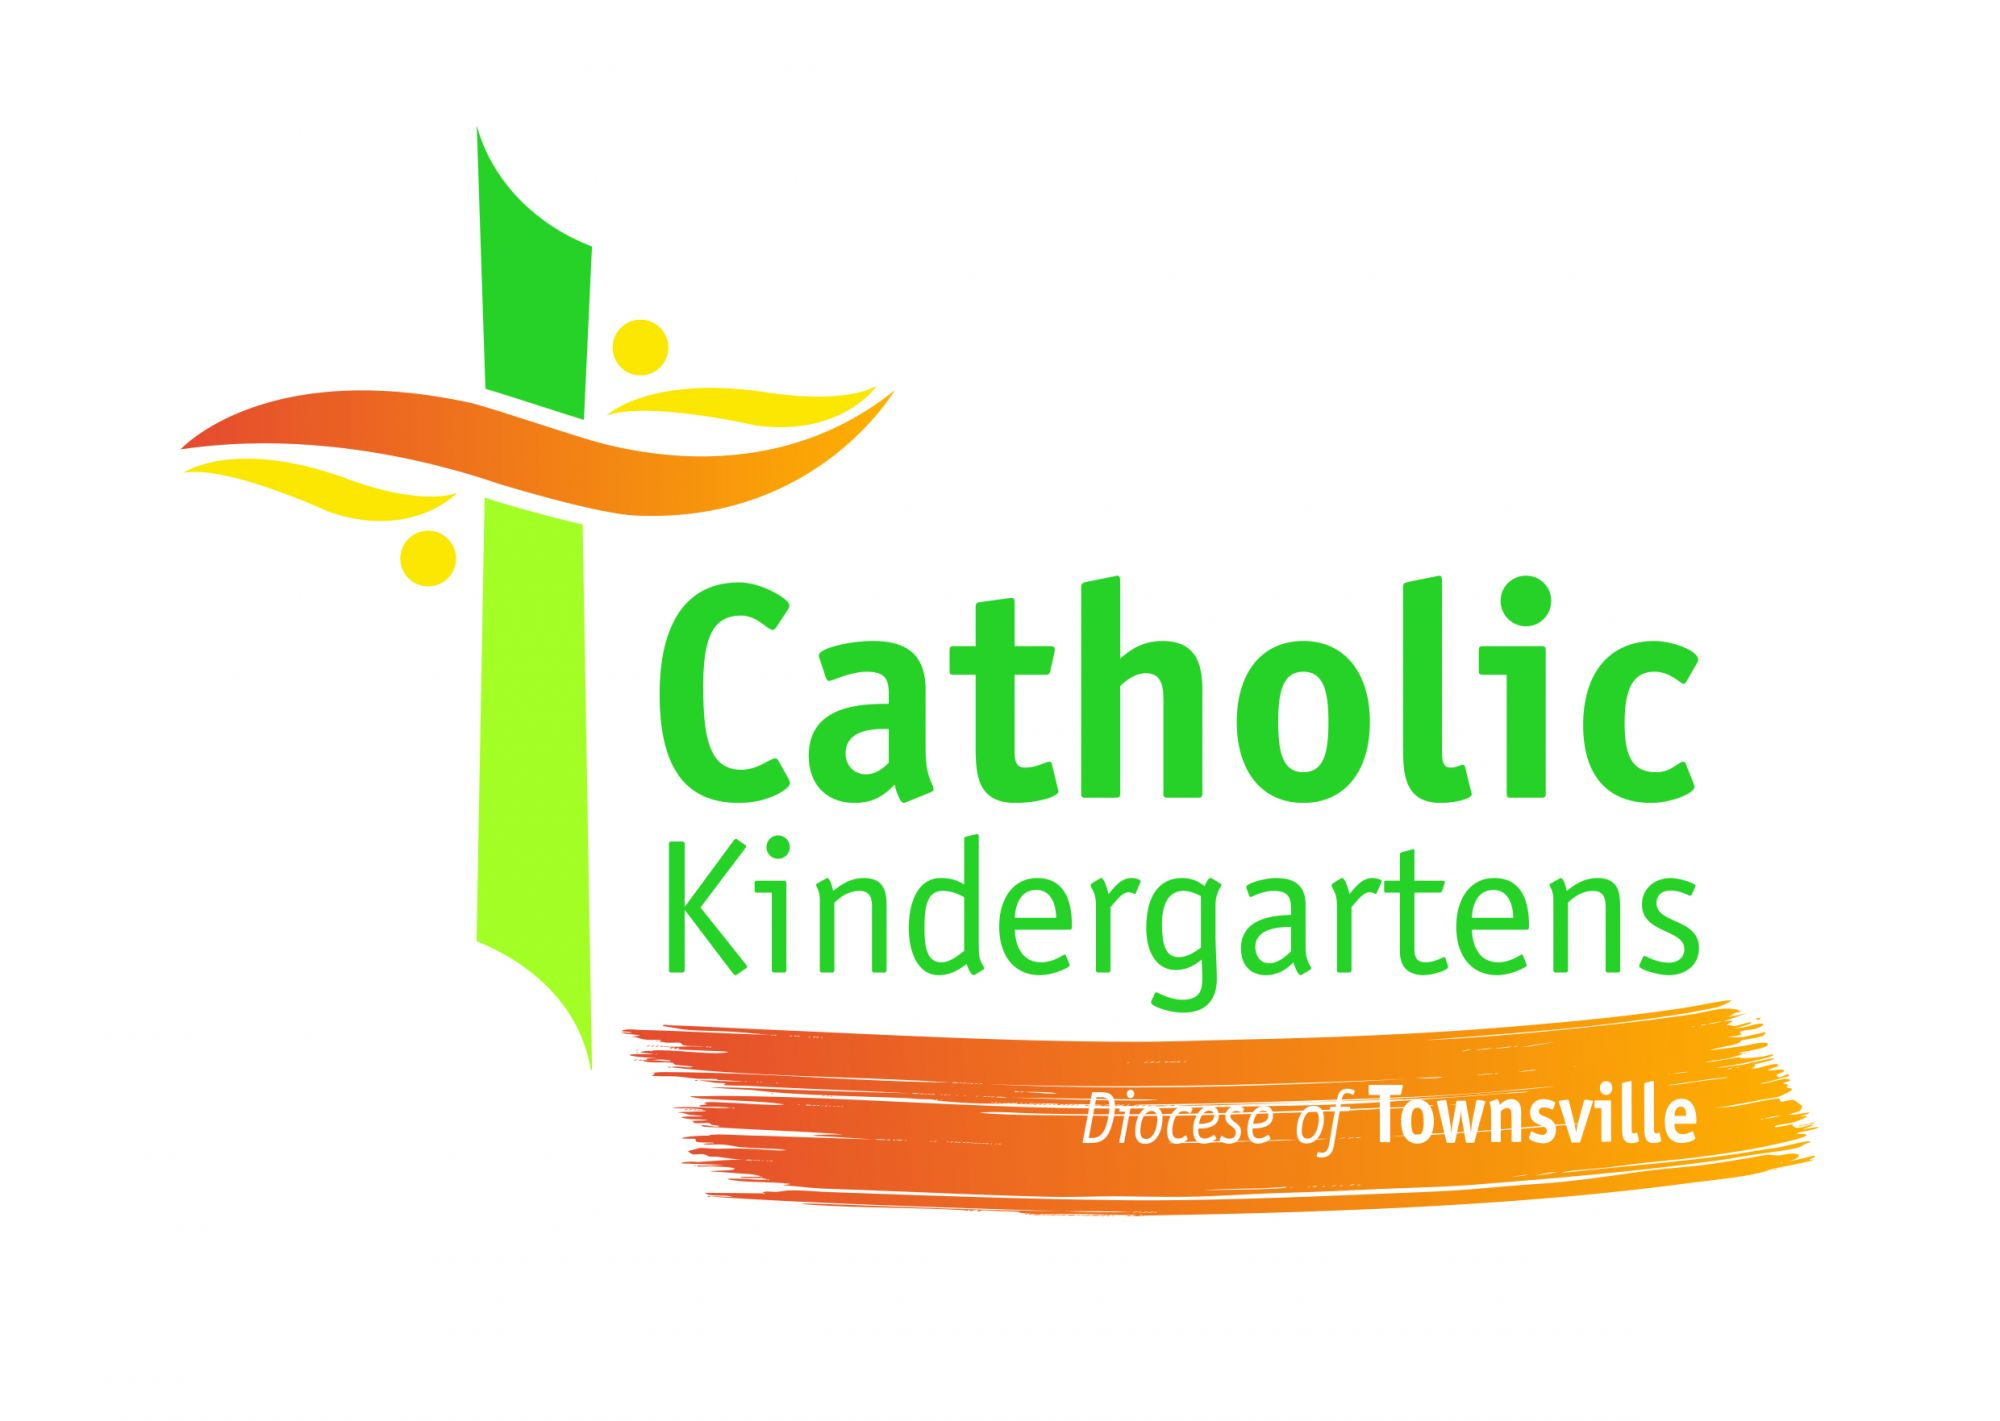 Limited places available in Catholic Kindergarten for 2018